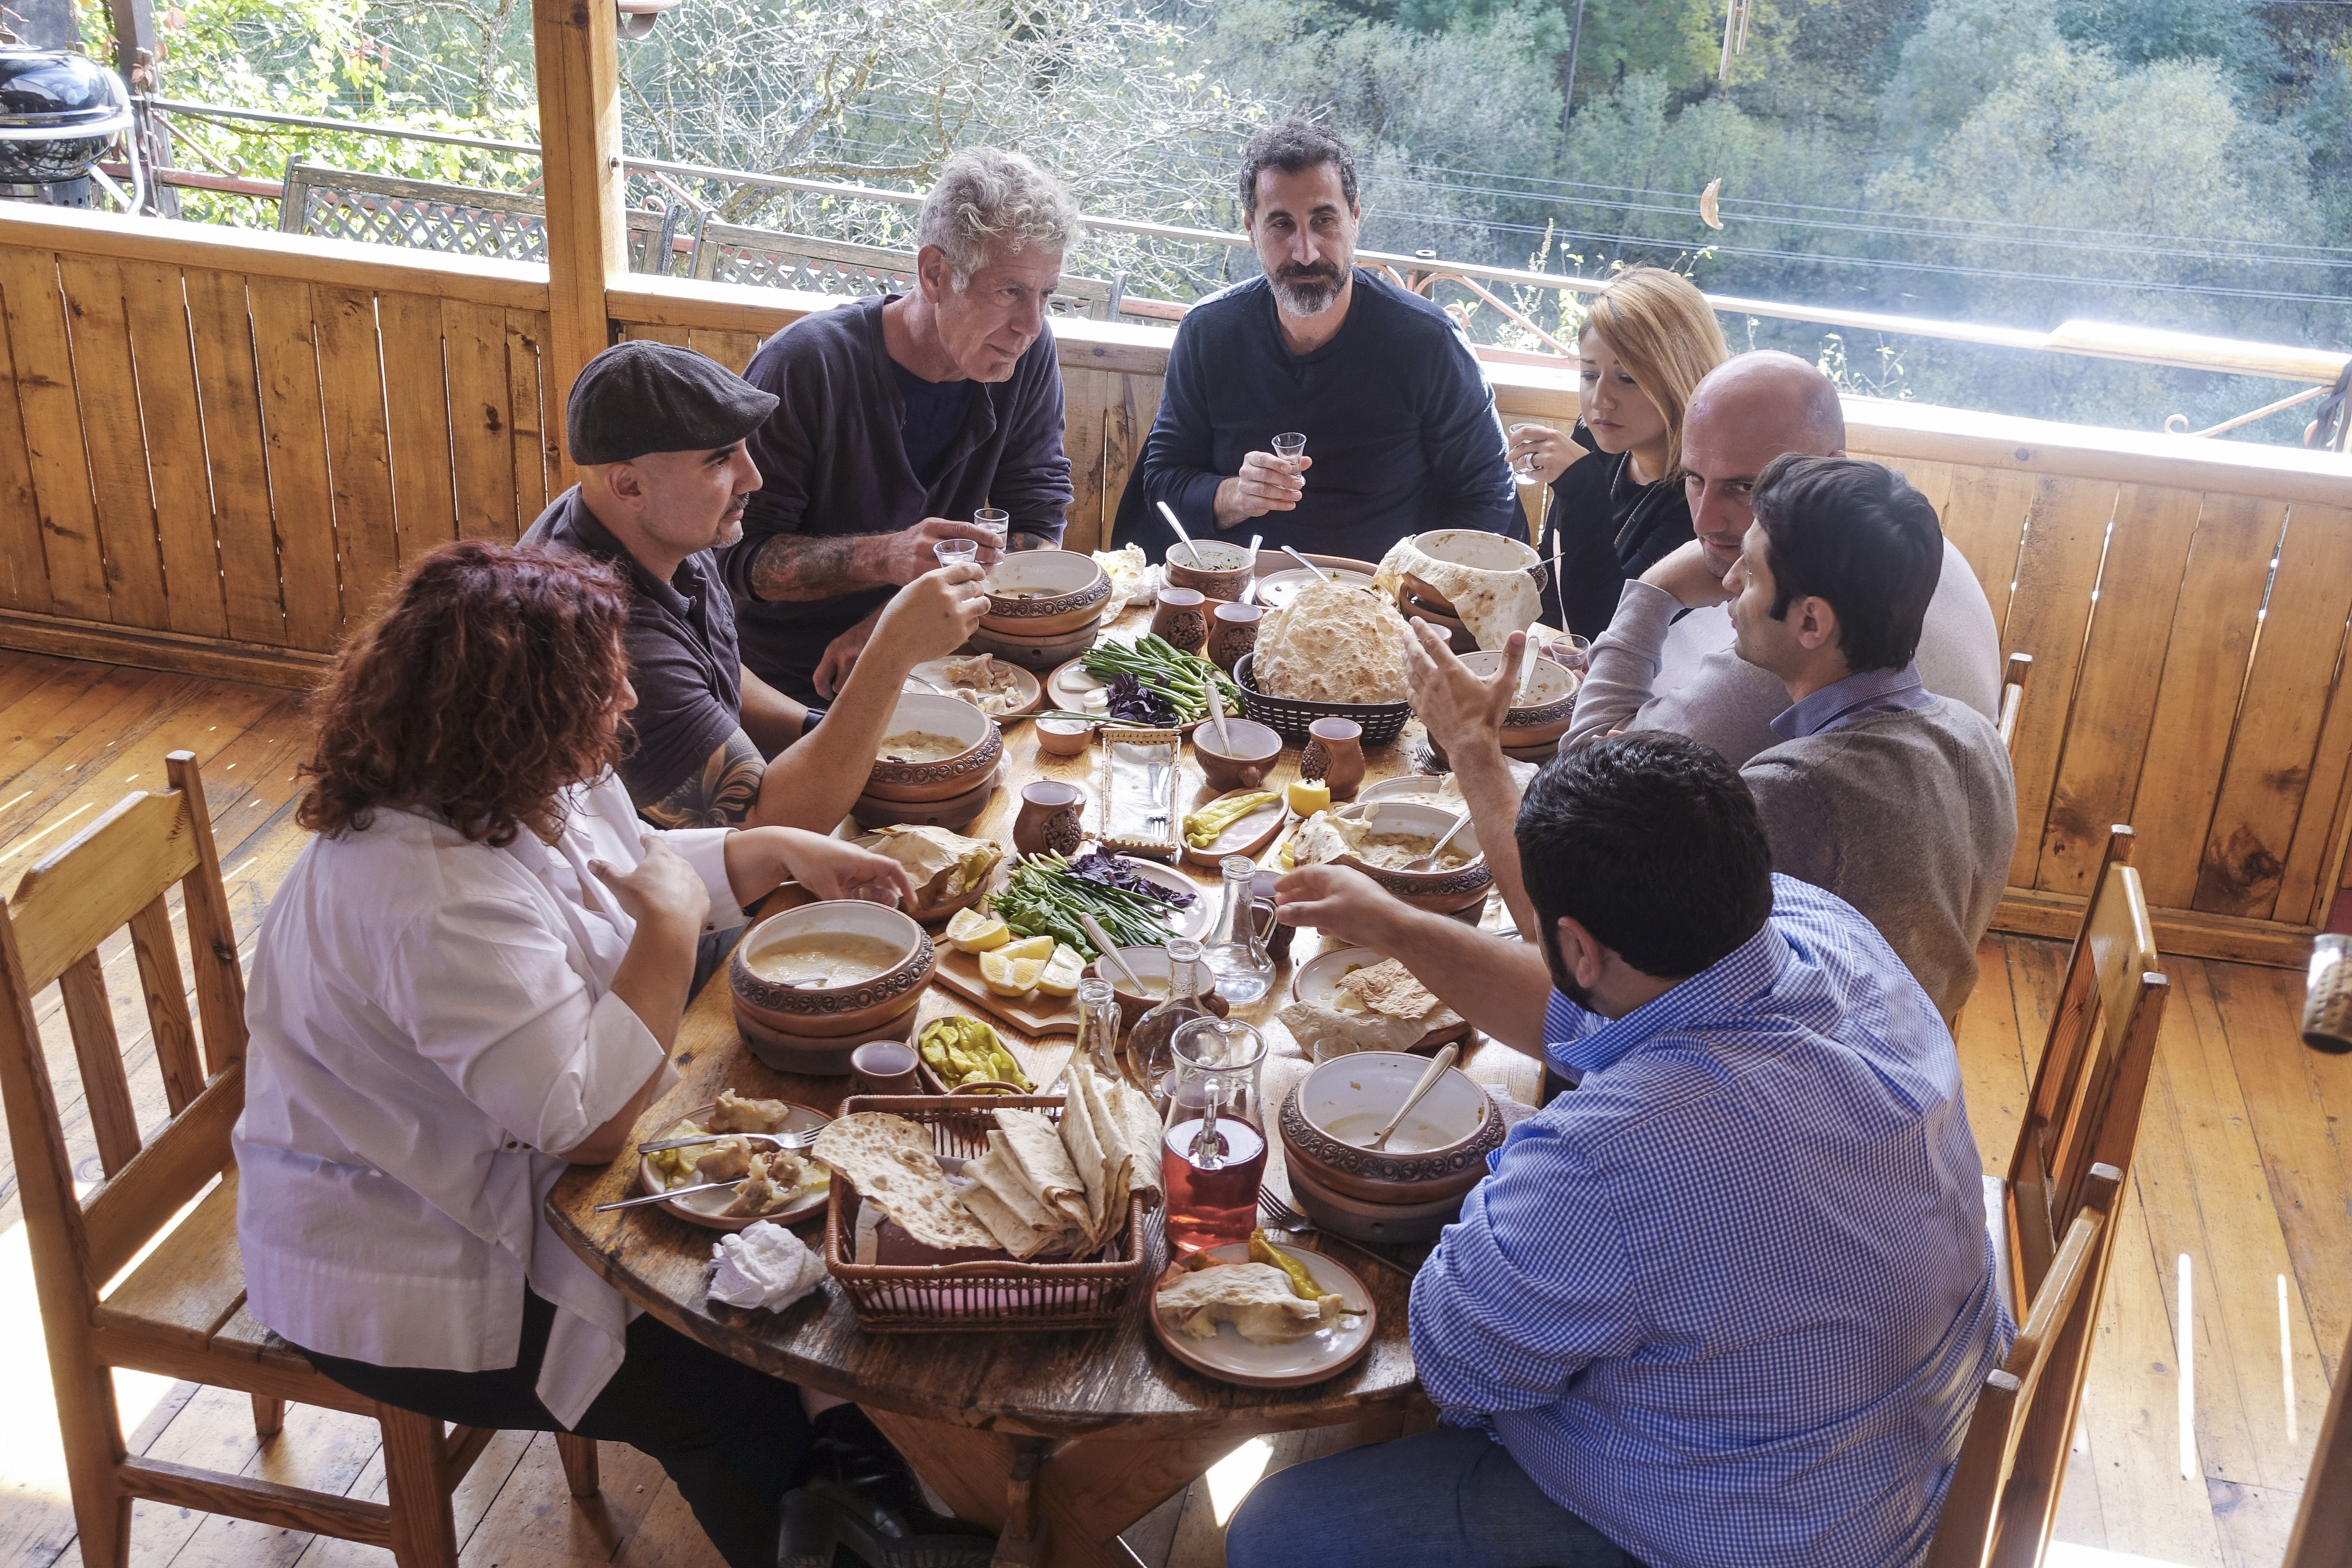 In a scene from this week's Parts Unknown, Anthony Bourdain sits for a meal with guests including musician Serj Tankin at the guest house, Daravand, in Dilijan, Armenia.